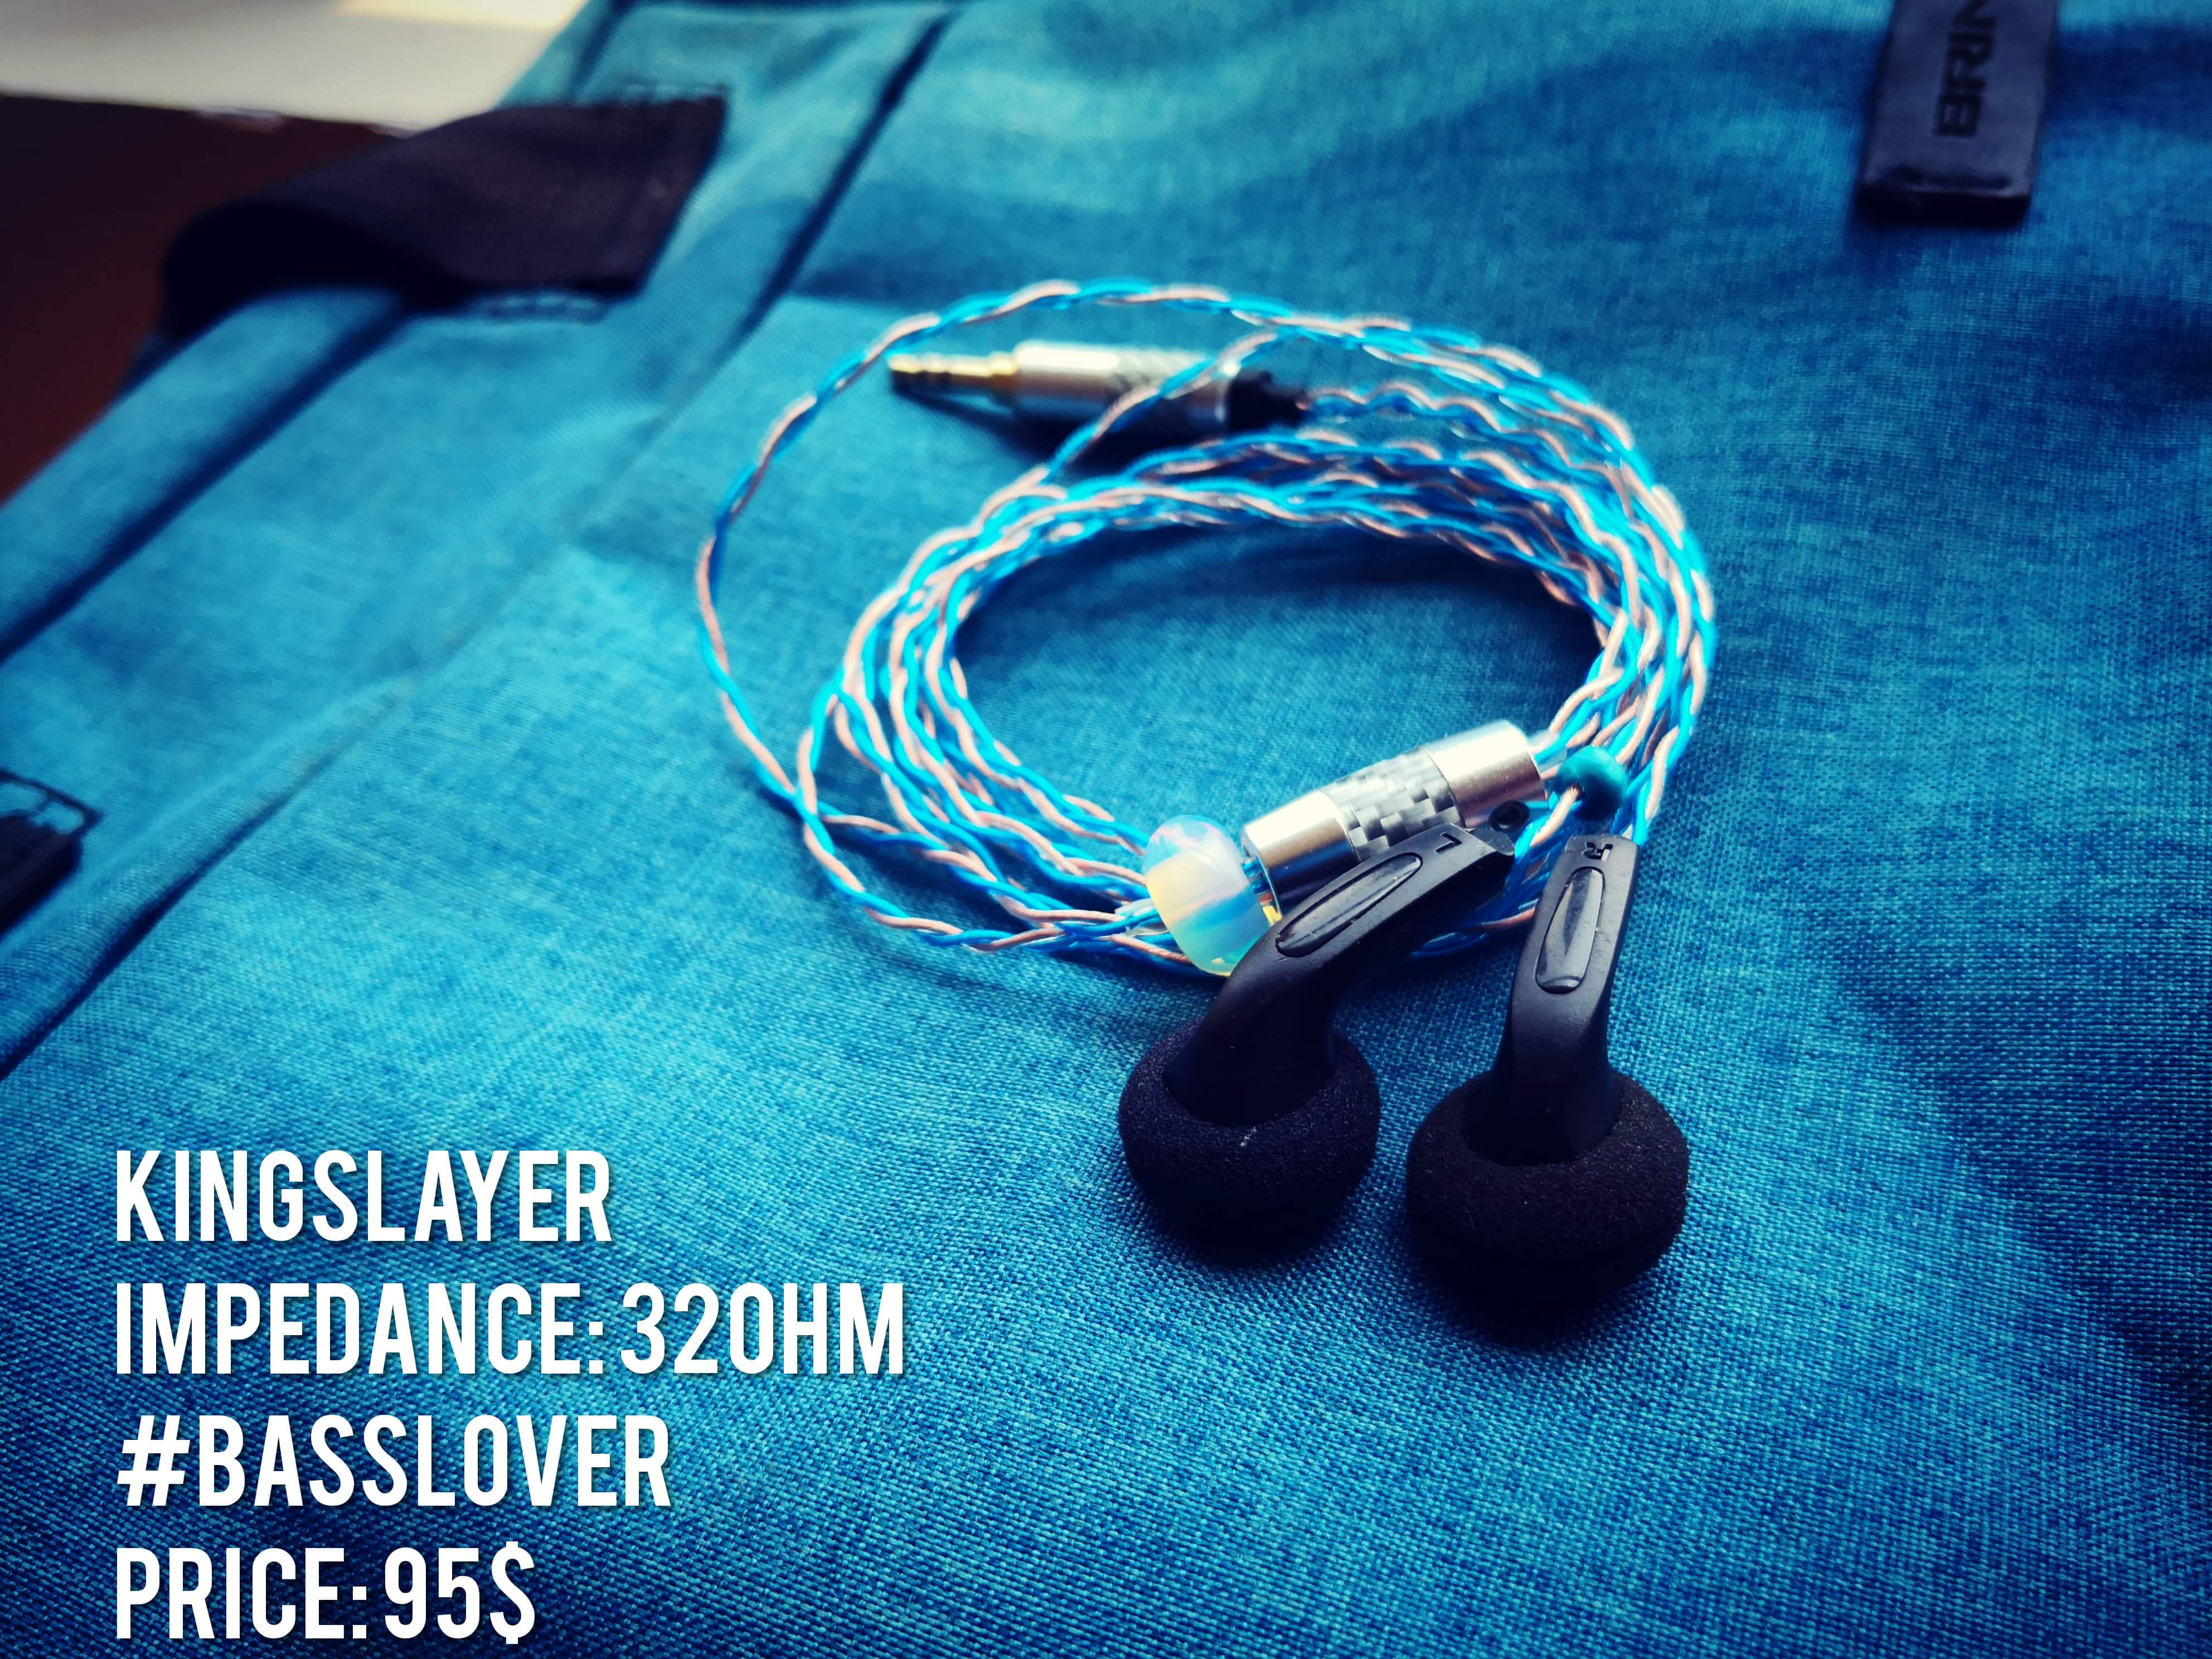 Moonbuds Kingslayer | Headphone Reviews and Discussion